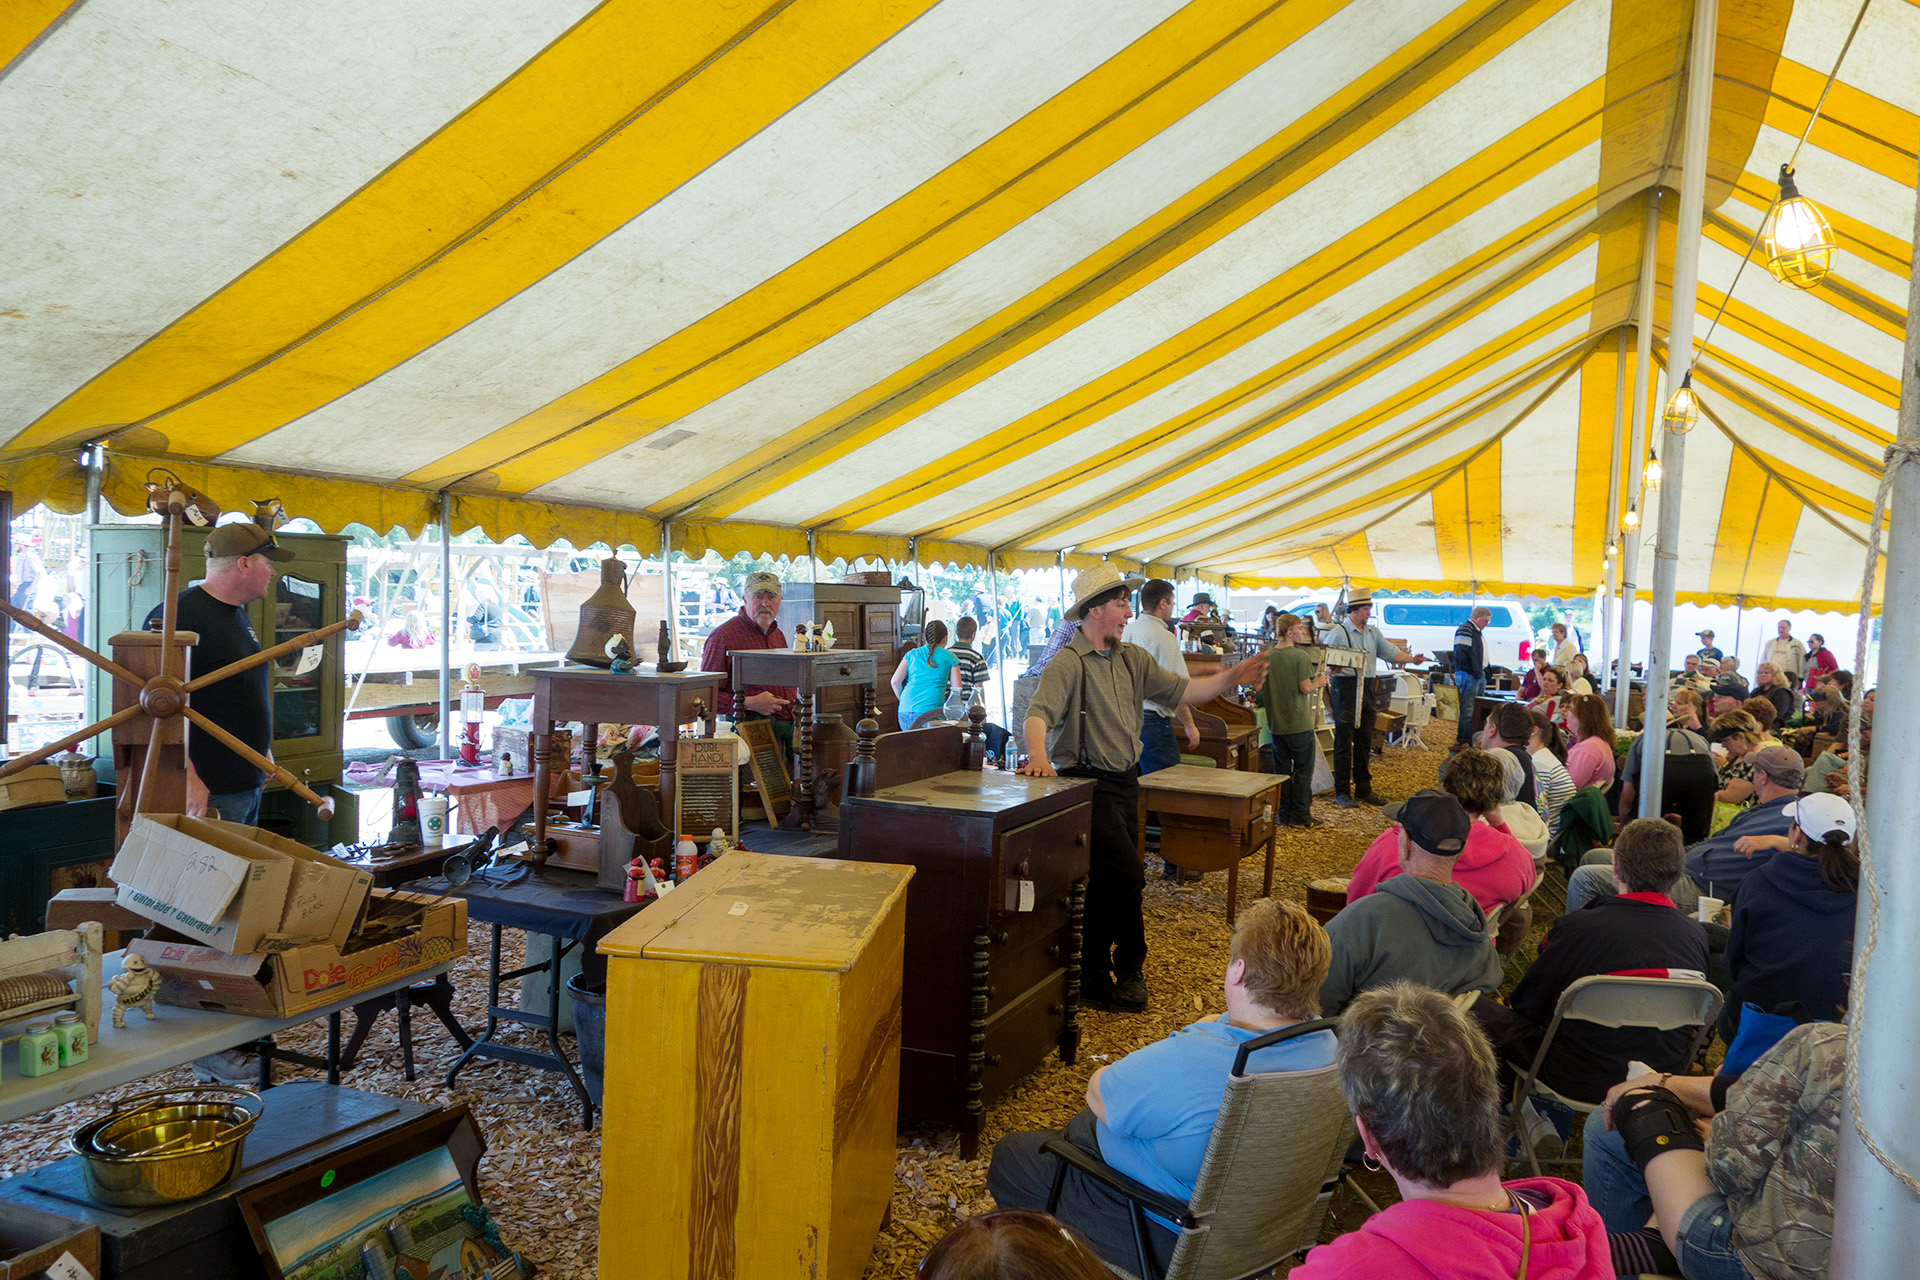 The action in the Antique tent at the Mud Sale.